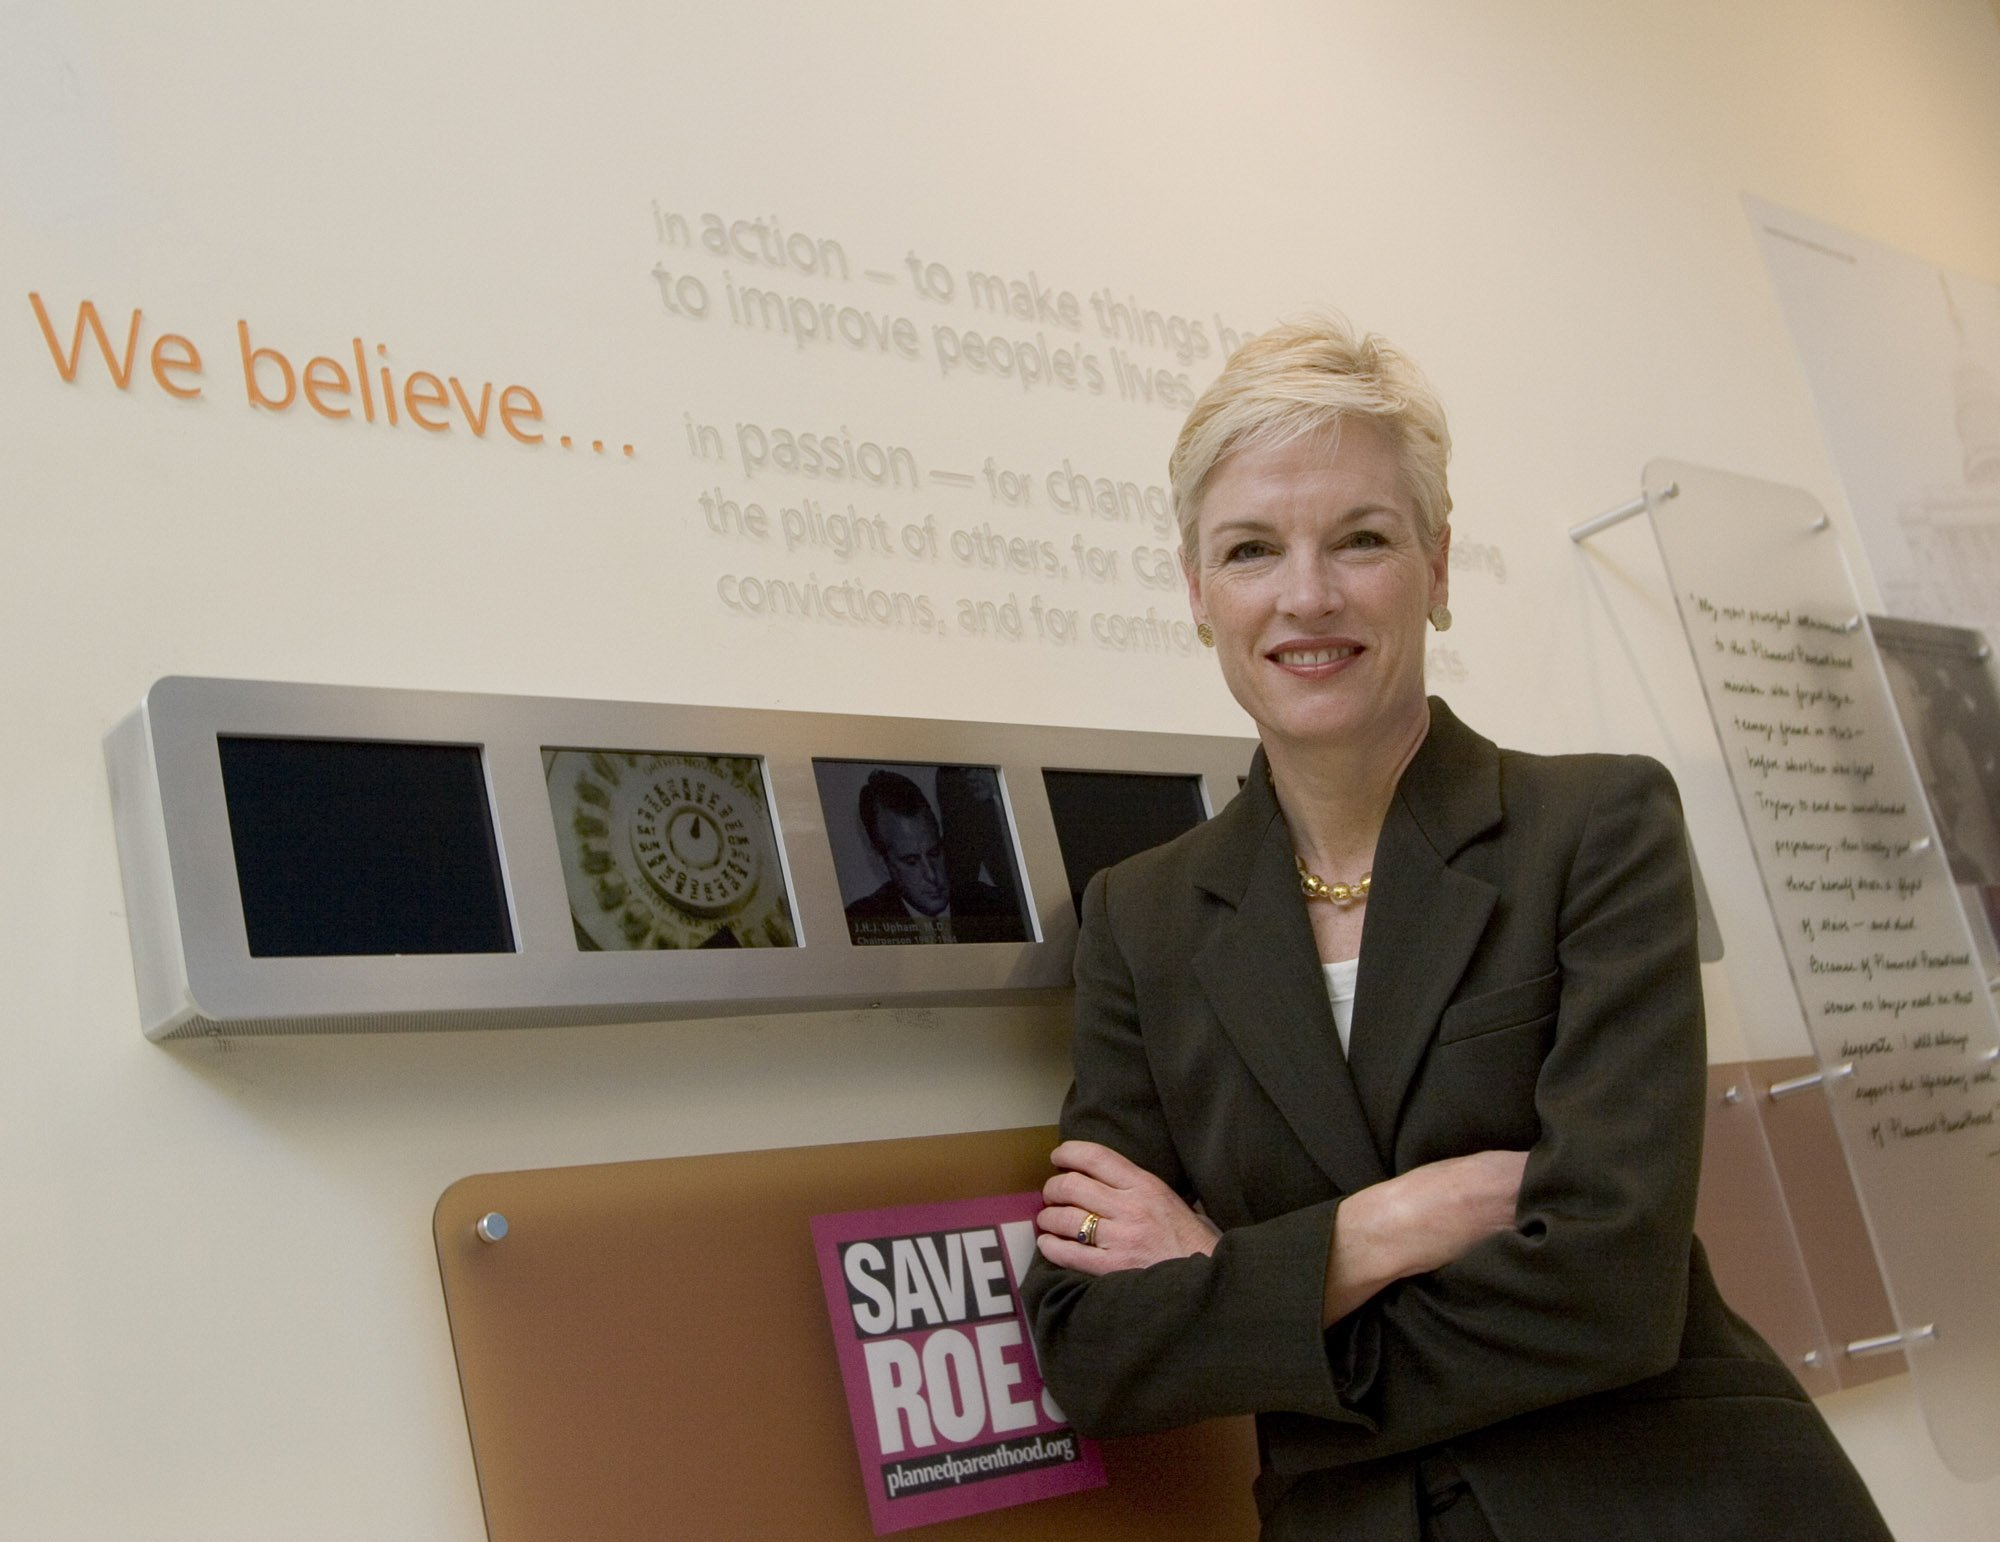 Cecile Richards, the new President of Planned Parenthood, stands infront of a display showing the strides of women's rights, including the company's mission statement, Wednesday, March 1, 2006, in New York. (Beth A. Keiser/Dallas Morning News/KRT)